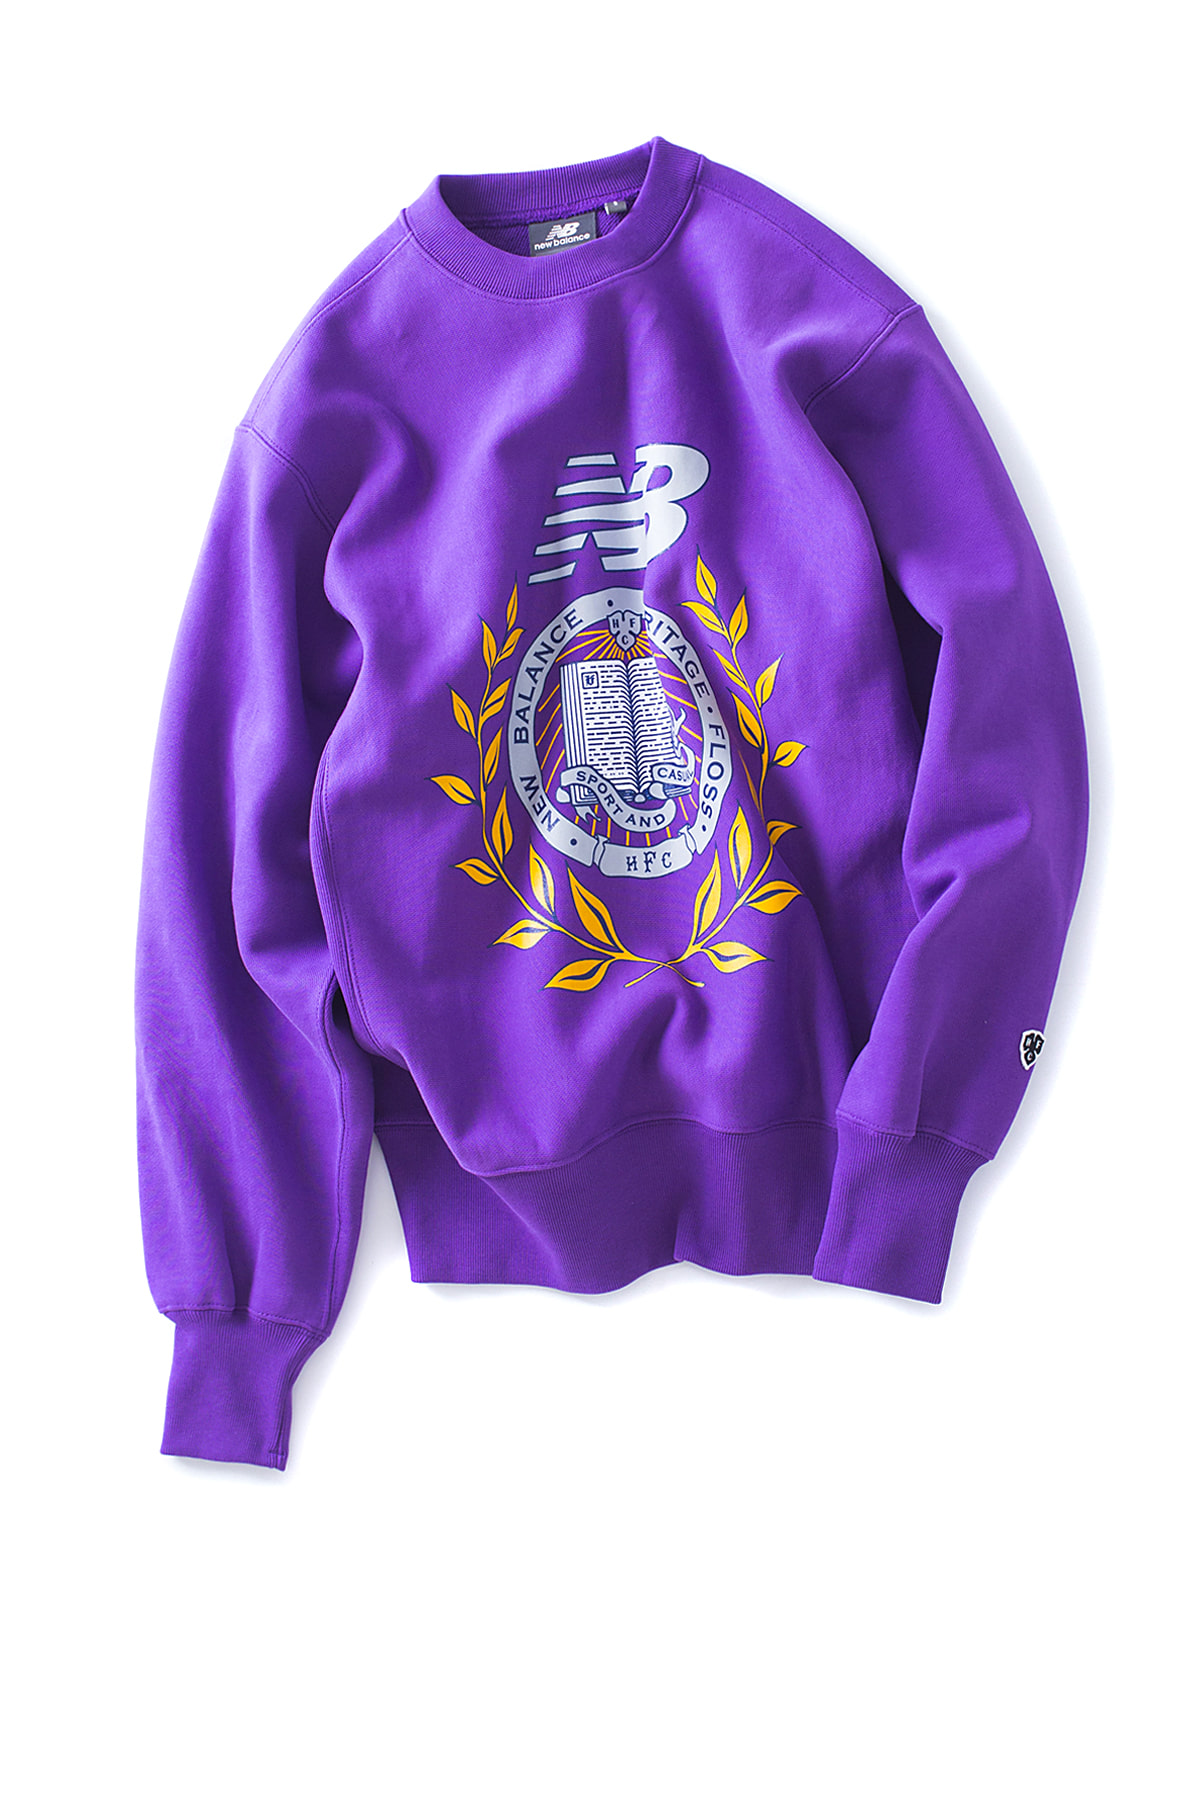 NB X Heritage Floss : Collage Crewneck (Purple)